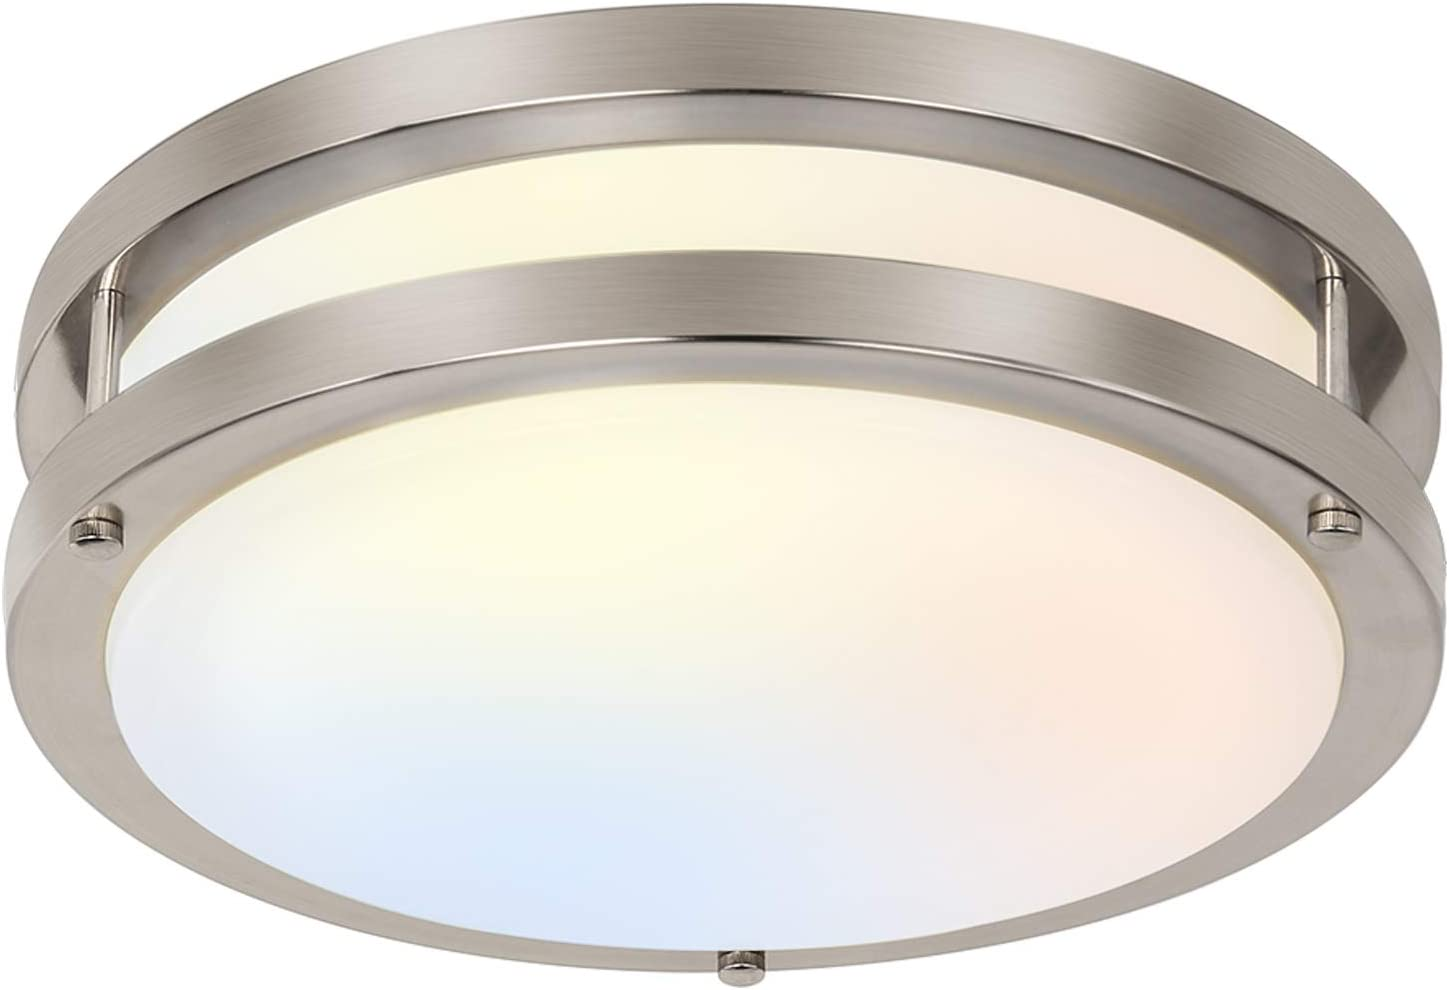 13 Inch Flush Mount Led Ceiling Light Fixture 3000k 4000k 5000k Adjustable Ceiling Lights Brushed Nickel Saturn Dimmable Lighting For Hallway Bathroom Kitchen Or Stairwell Etl Listed Amazon Com